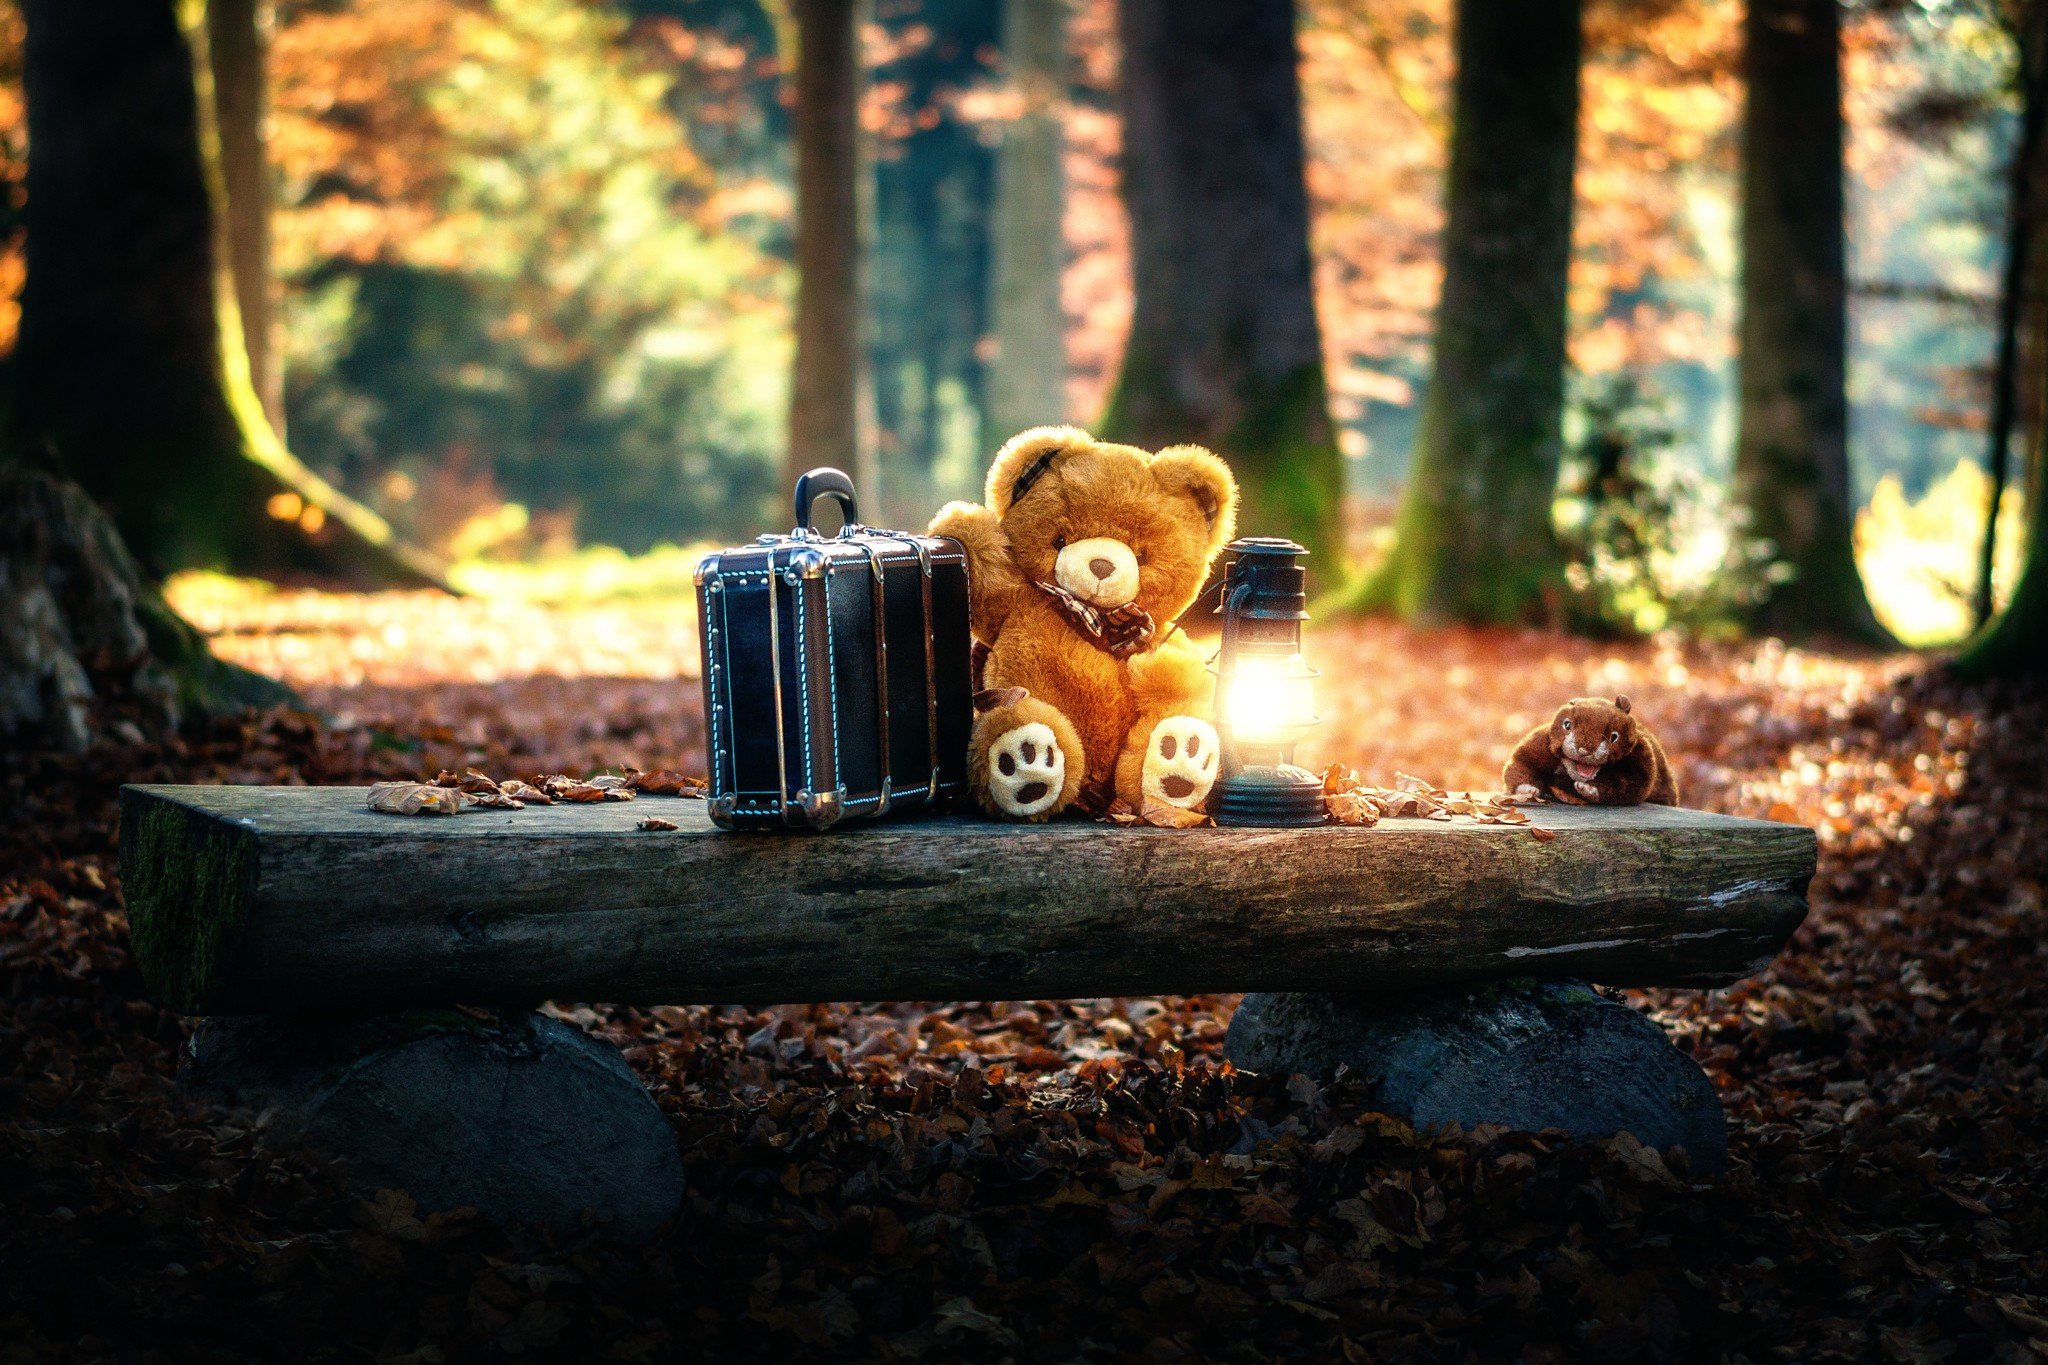 1152x864 Teddy Bears Cute Alone In Forest 1152x864